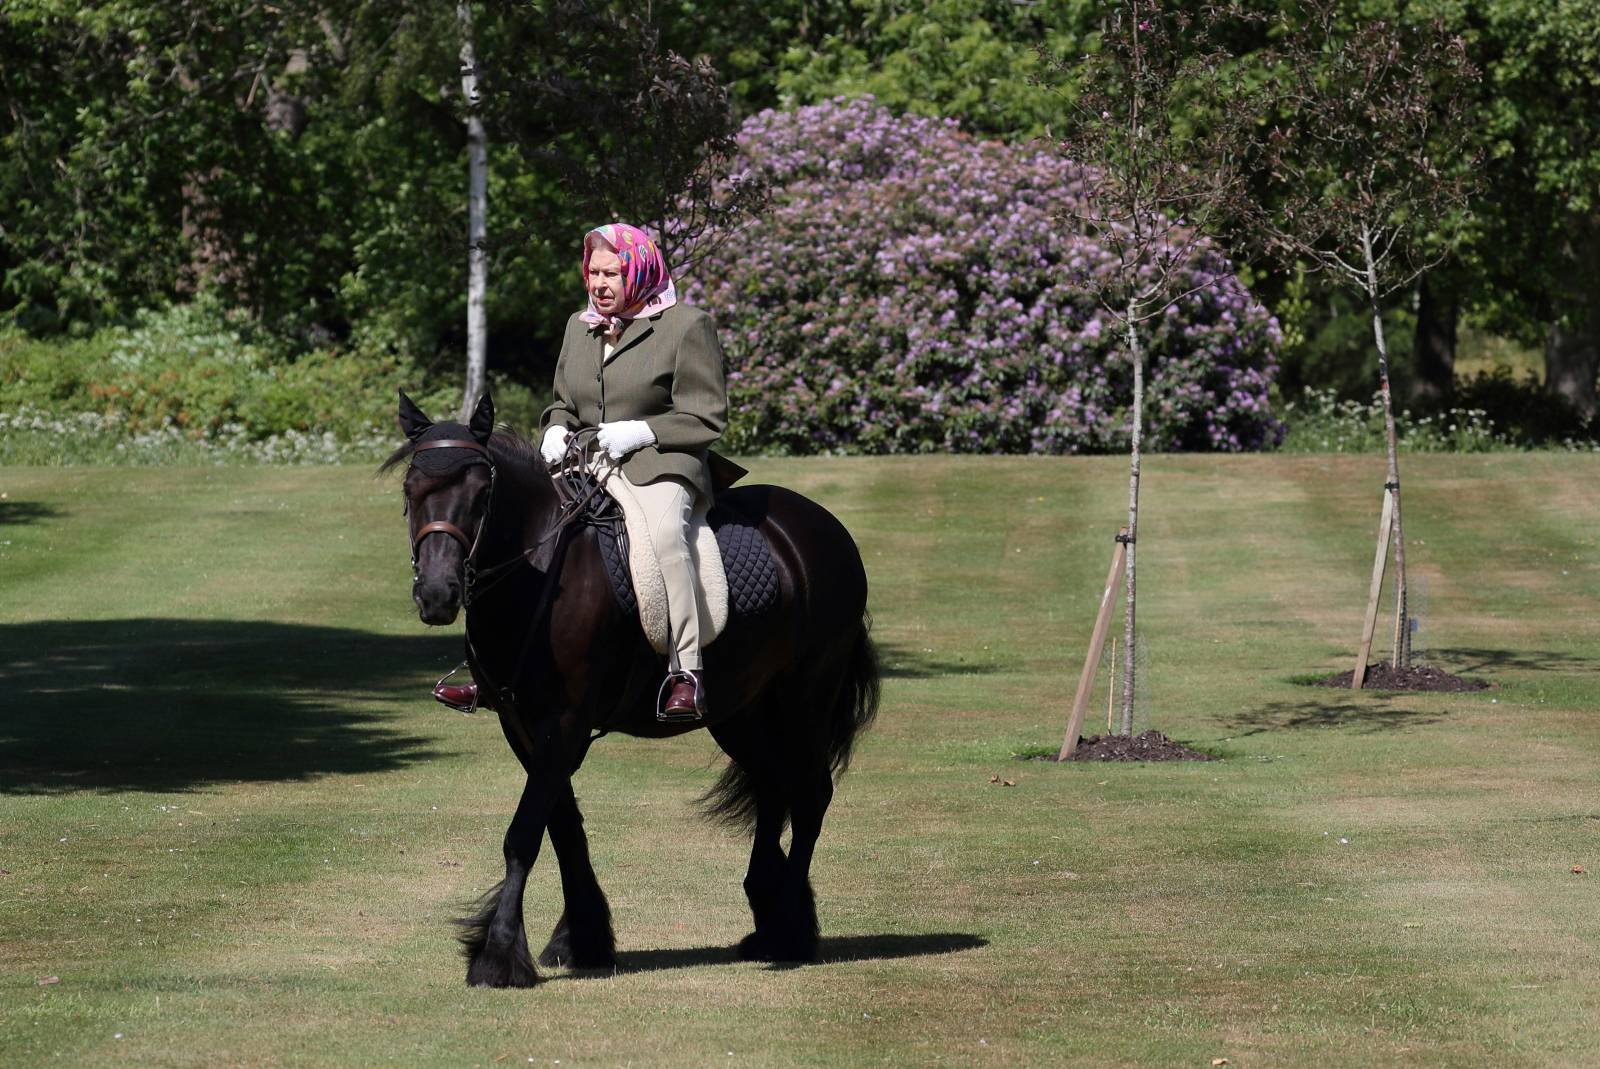 Britain's Queen Elizabeth II rides Balmoral Fern, a 14-year-old Fell pony, in Windsor Home Park